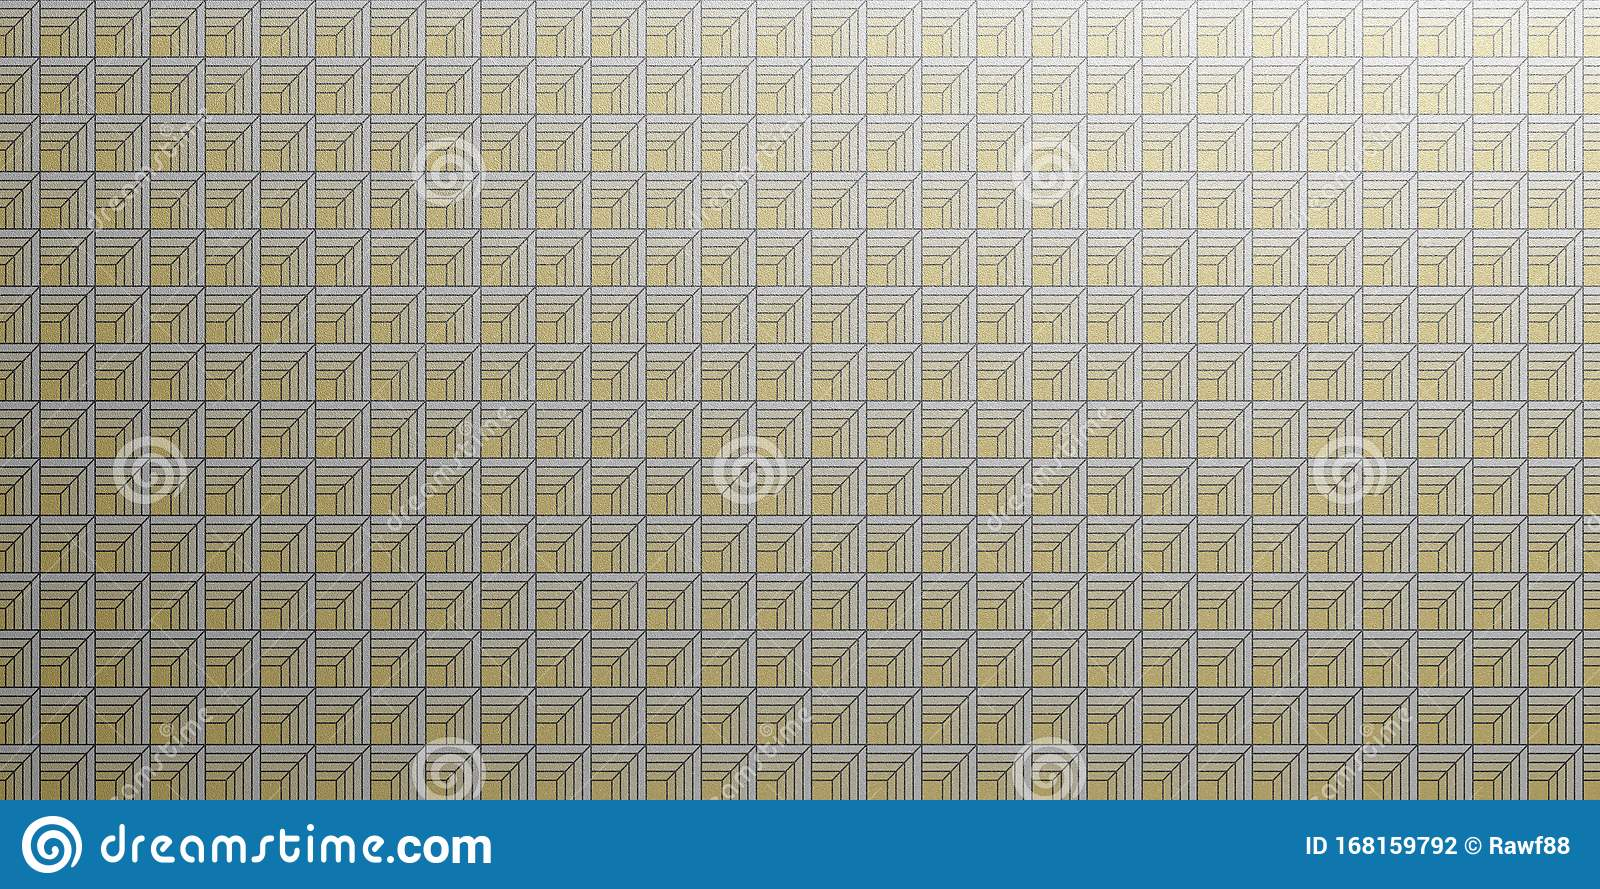 geometric wallpaper pattern silver yellow color seamless background shiny texture d illustration art deco retro vintage 168159792